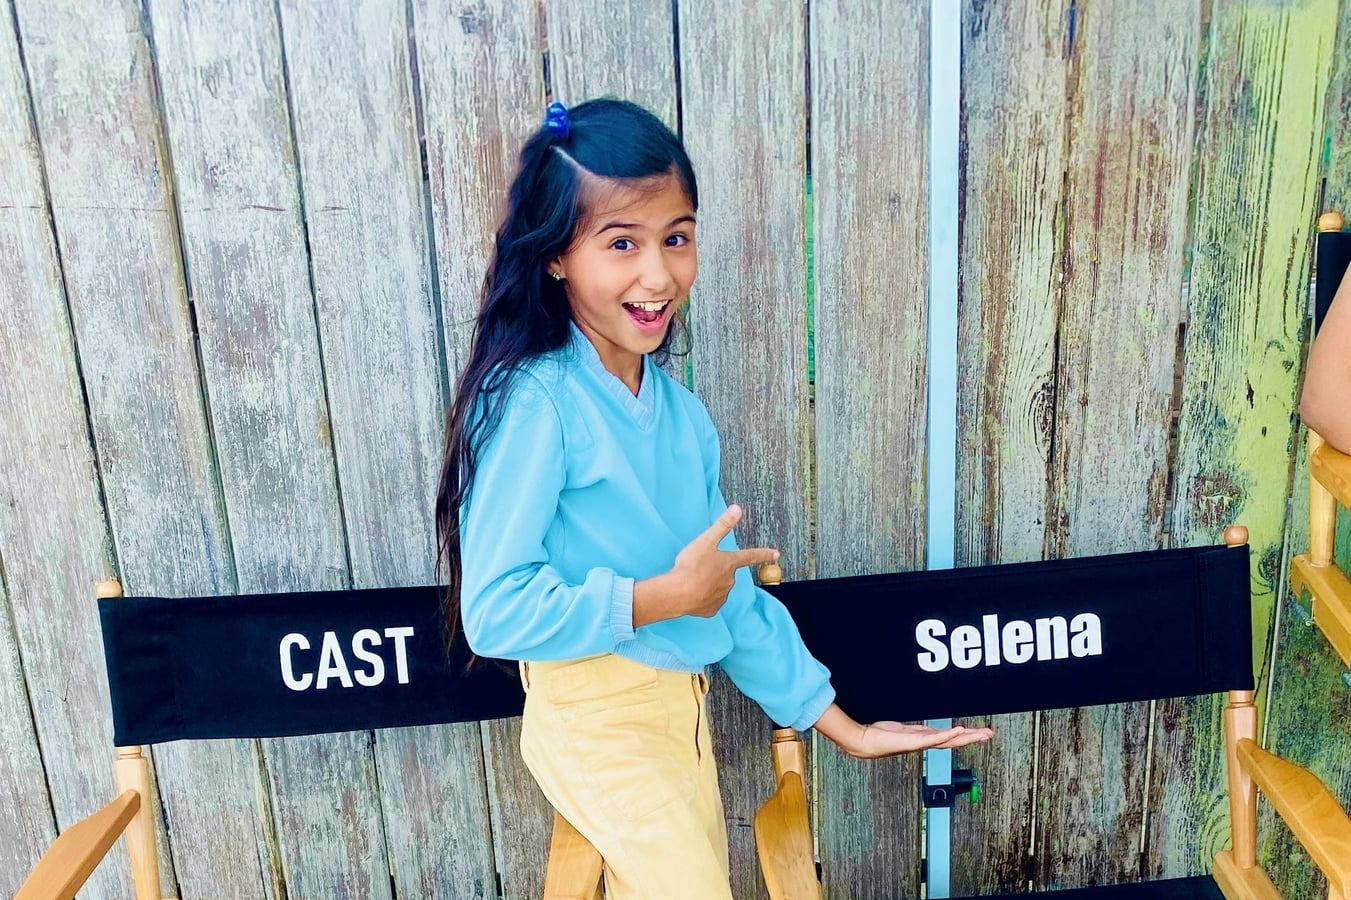 Now that Netflix's 'Selena: The Series' is out in the world, fans are already sharing their fav moments from the show. Check out the best scenes here.